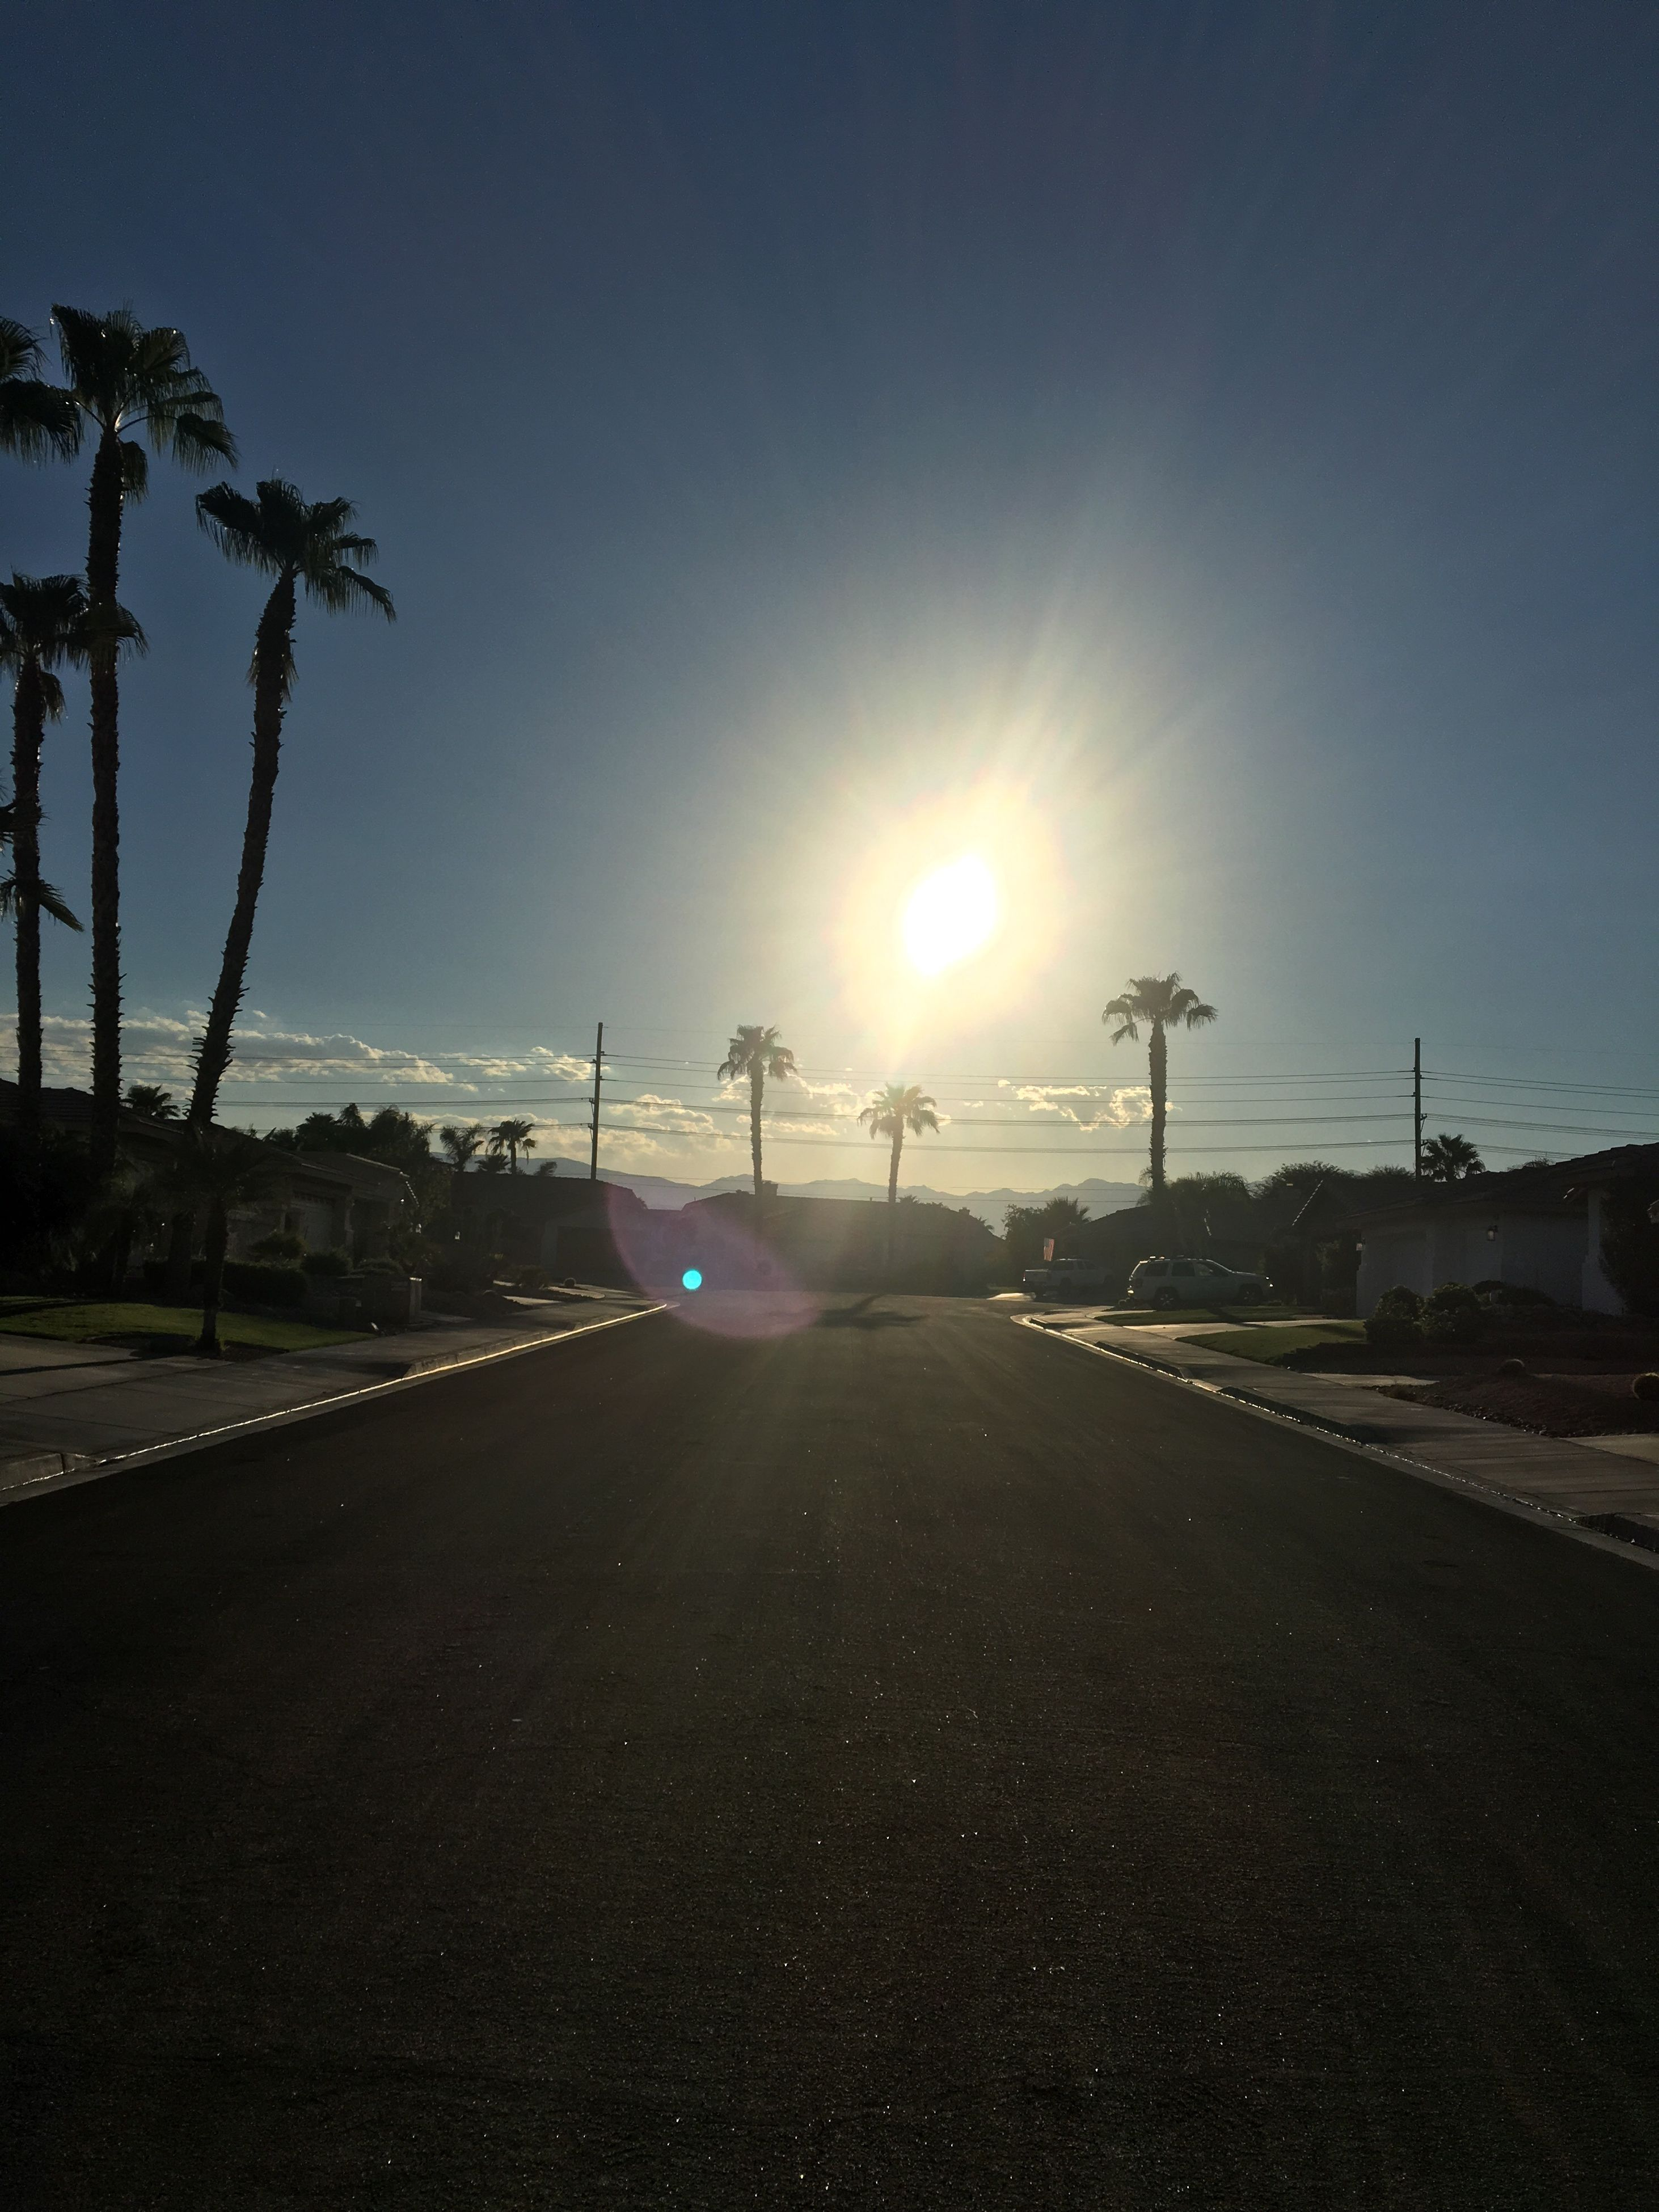 road, sun, the way forward, palm tree, diminishing perspective, street, clear sky, long, solitude, vanishing point, outdoors, tranquil scene, sky, country road, day, scenics, surface level, empty road